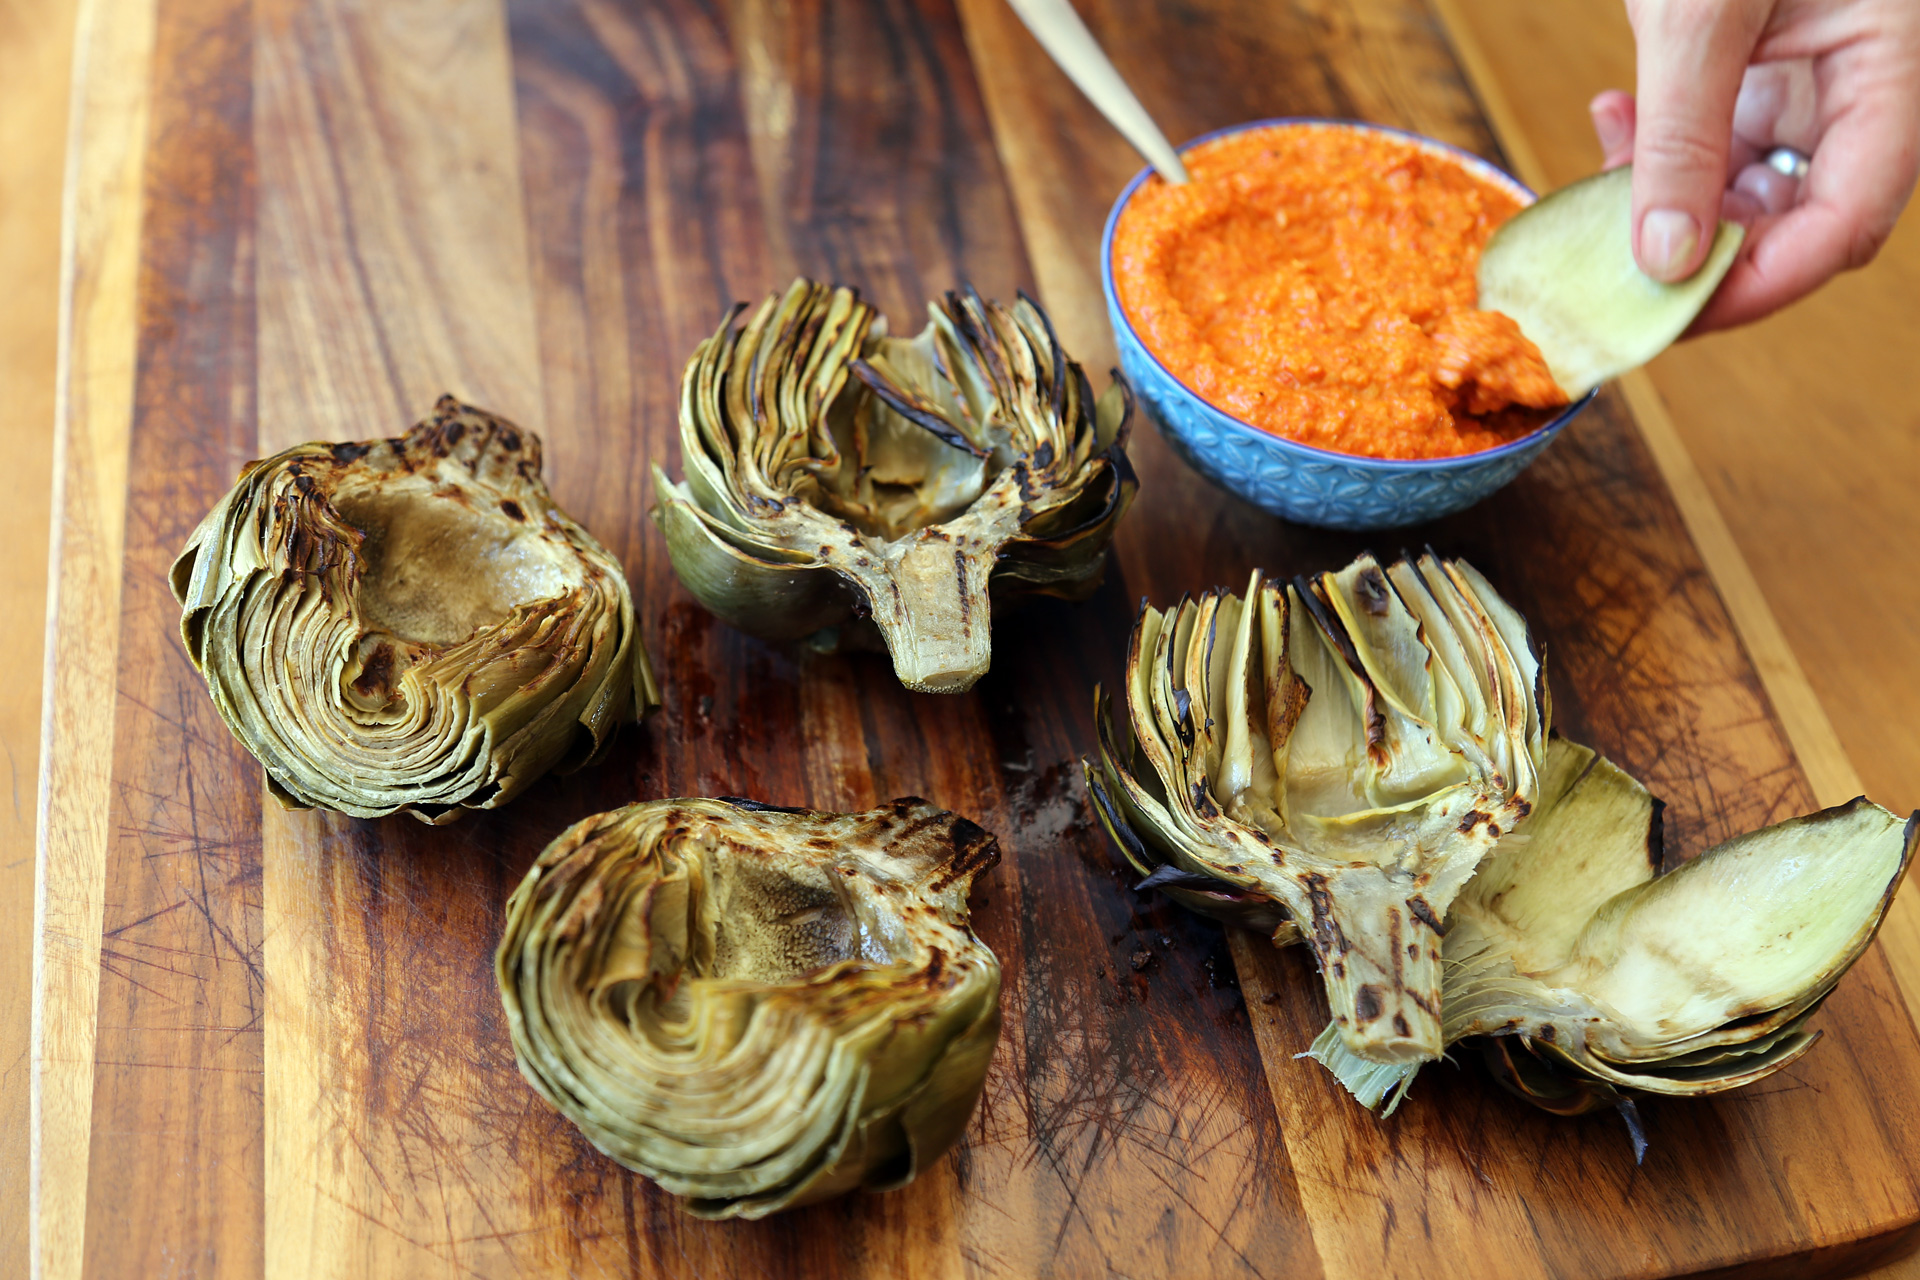 Grilled Artichokes with Romesco Sauce